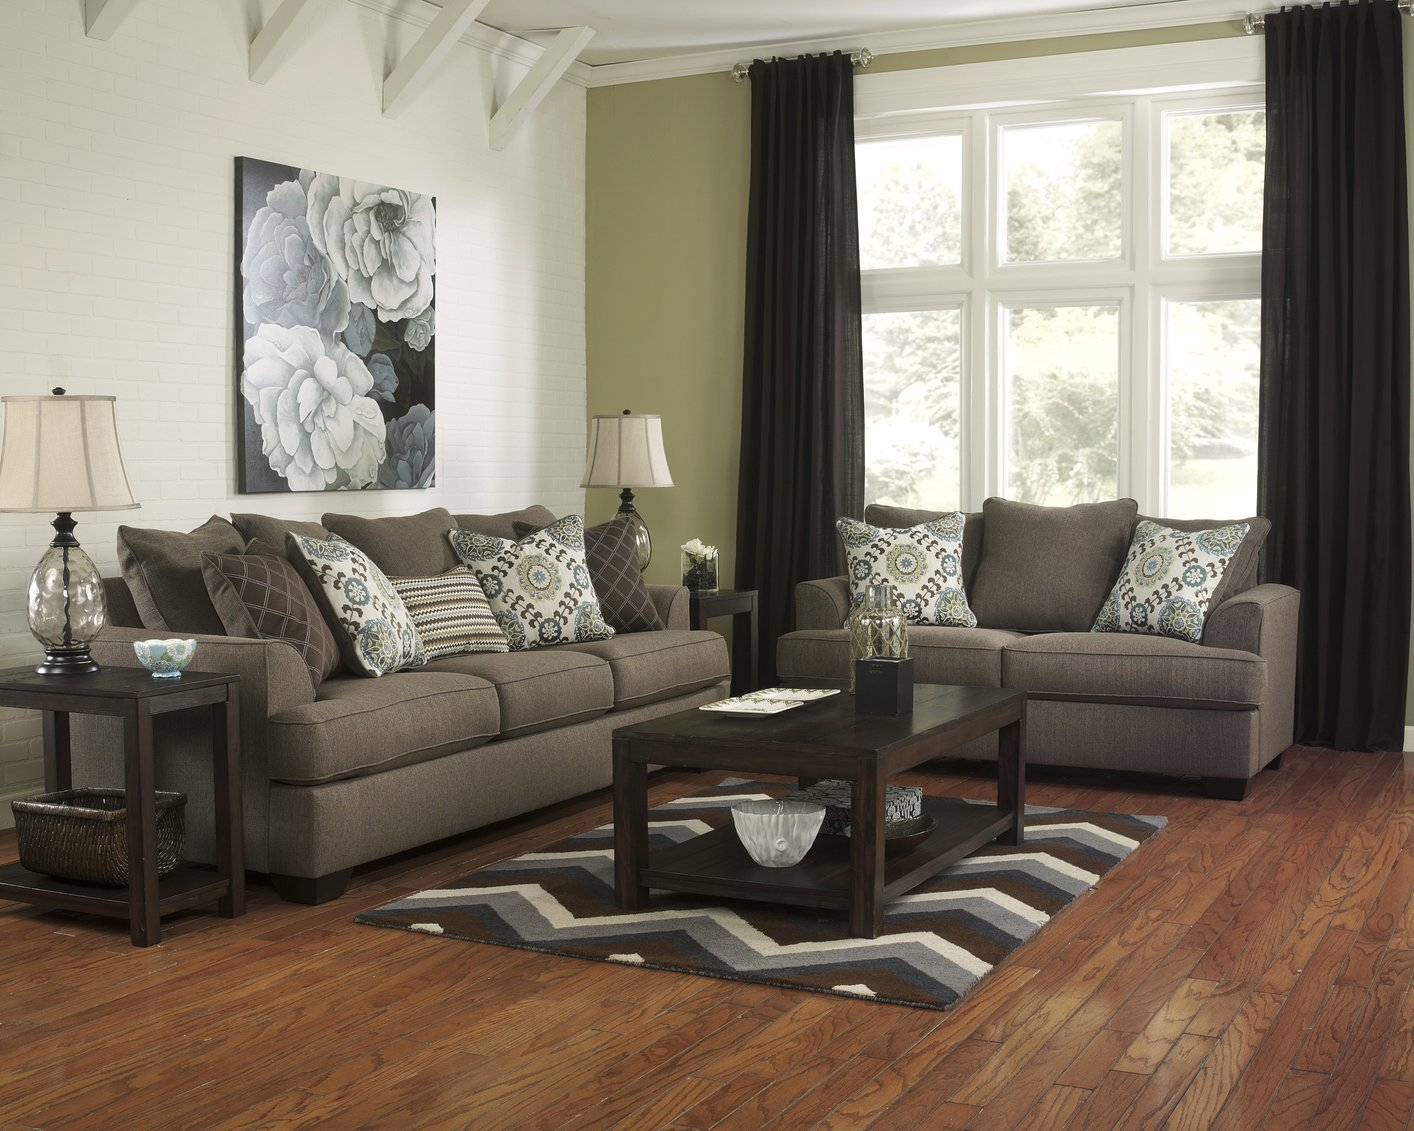 Living Room Sets Rent A Center lease to buy sofa and loveseats los angeles | dance-drumming